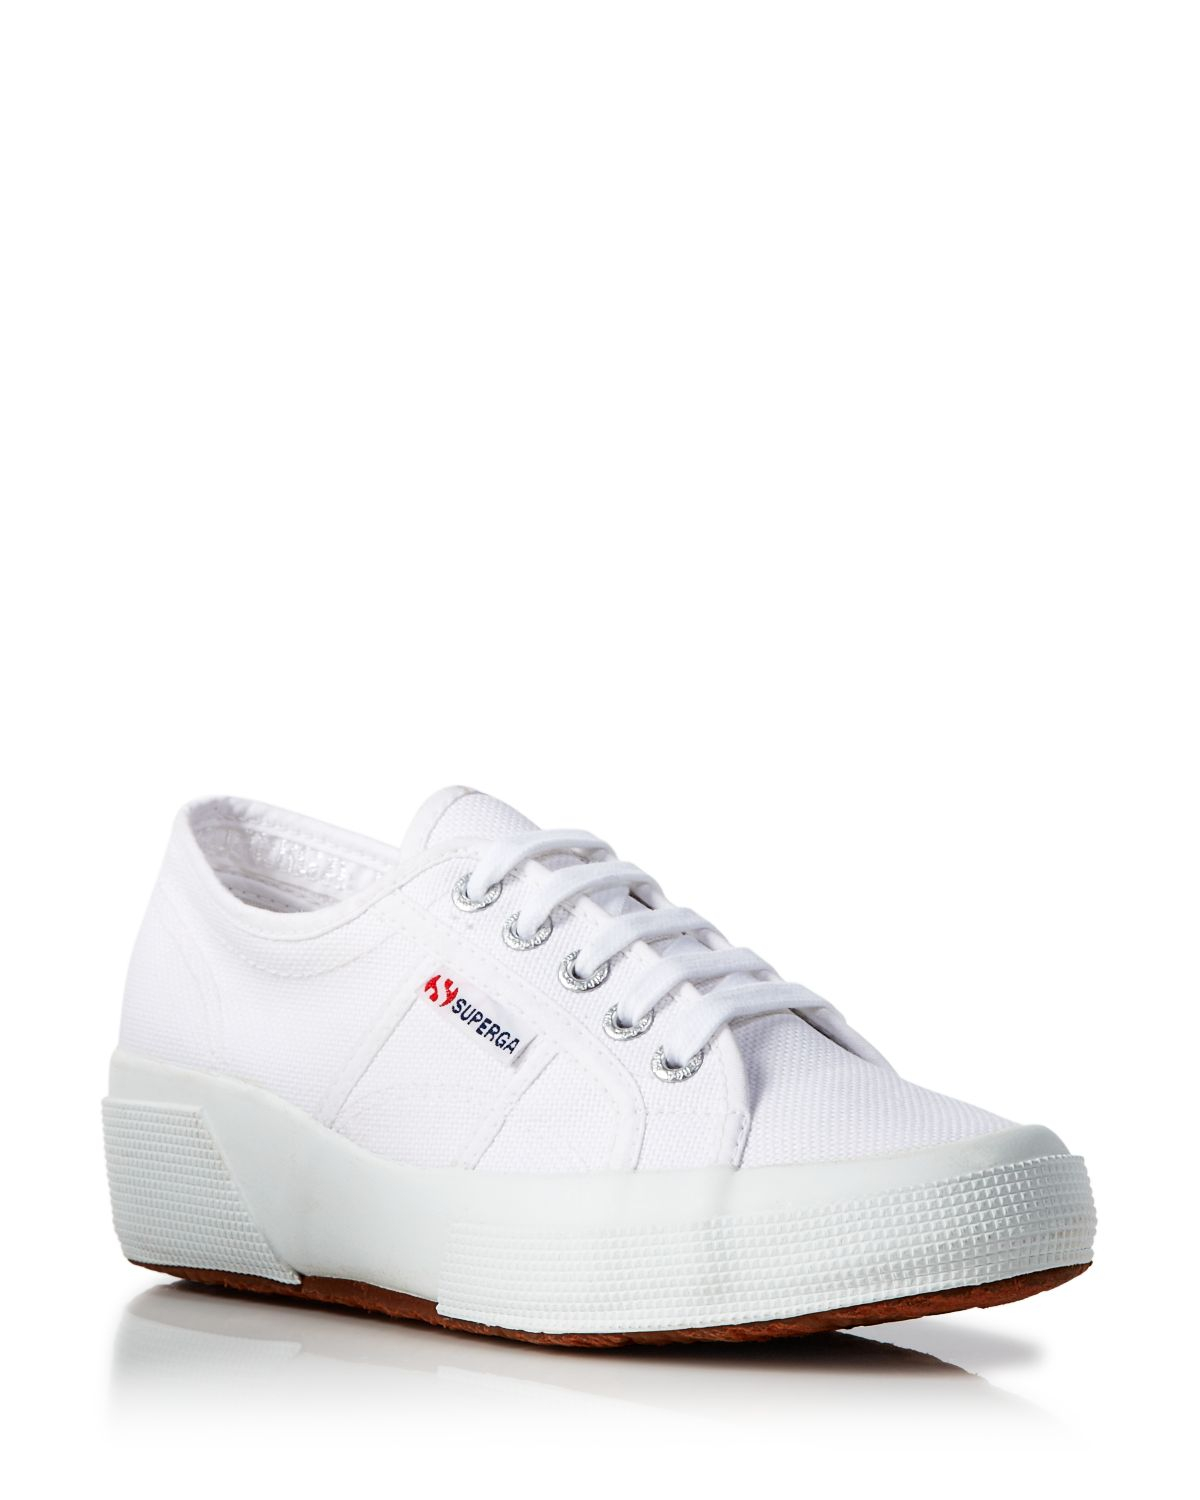 a6a938734ec Lyst - Superga Lace Up Sneakers - Hidden Wedge Heel in White